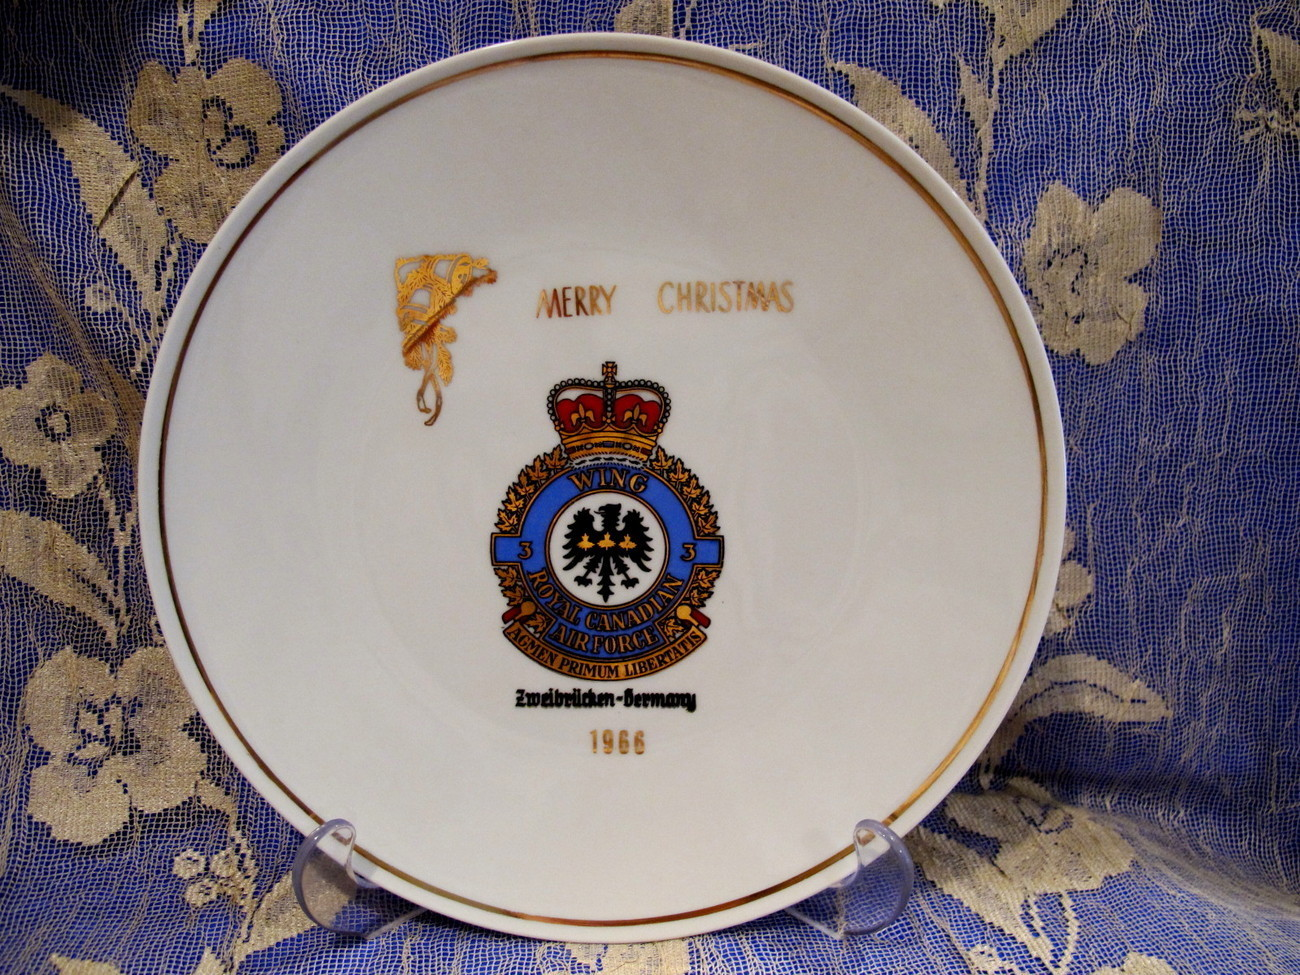 Primary image for RCAF Royal Canadian Air Force 3 Wing Zweibrucken Souvenir Collector Plate Xmas